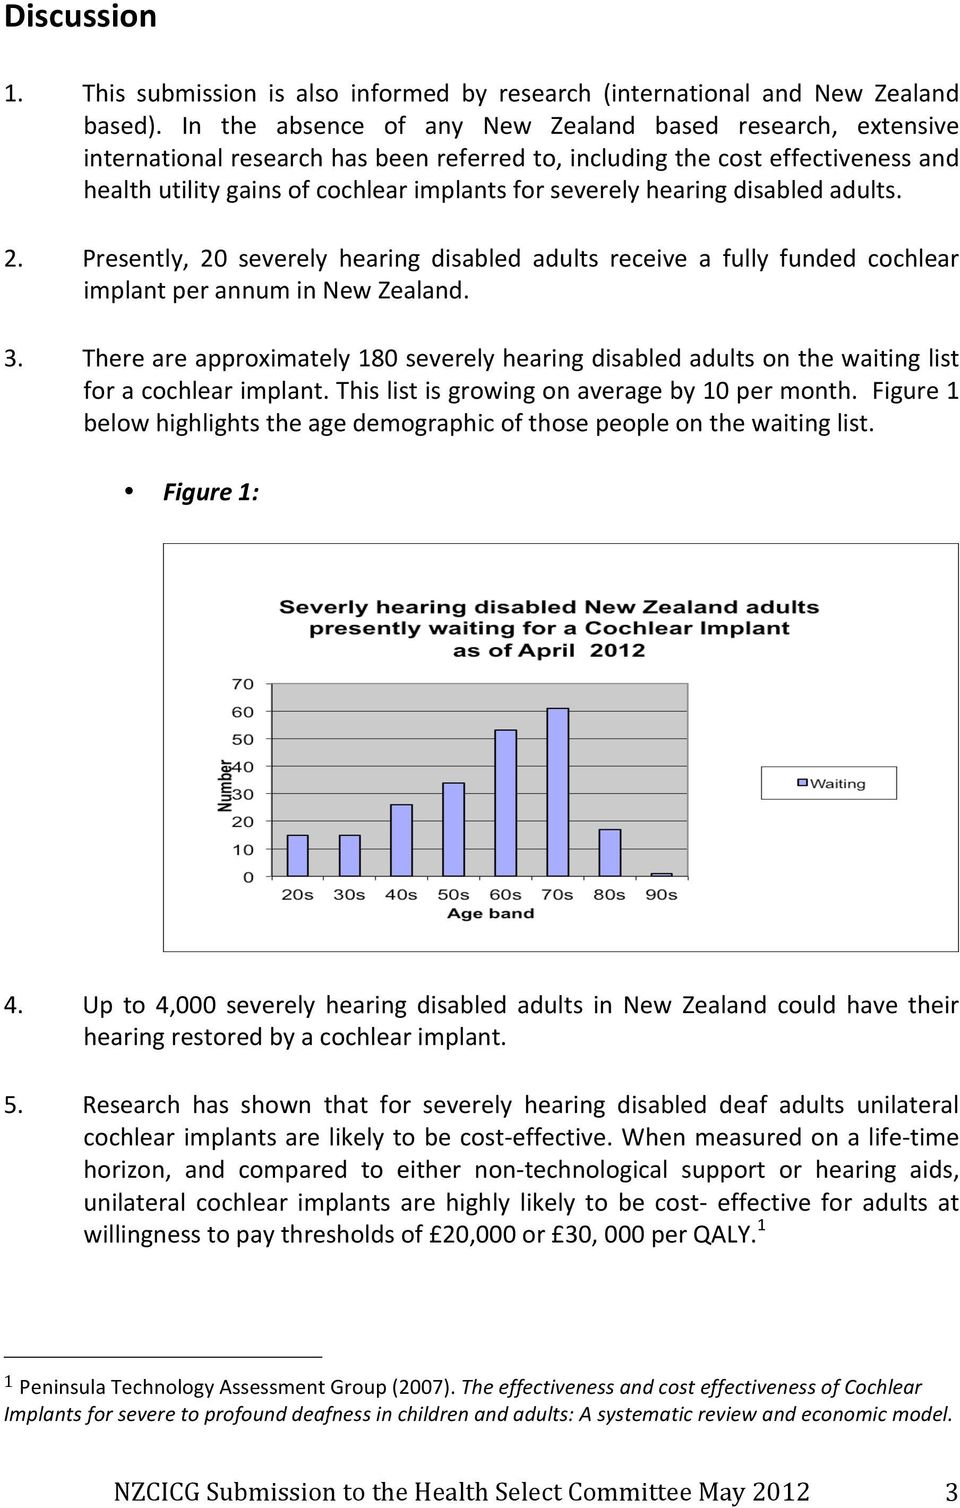 hearing disabled adults. 2. Presently, 20 severely hearing disabled adults receive a fully funded cochlear implant per annum in New Zealand. 3.